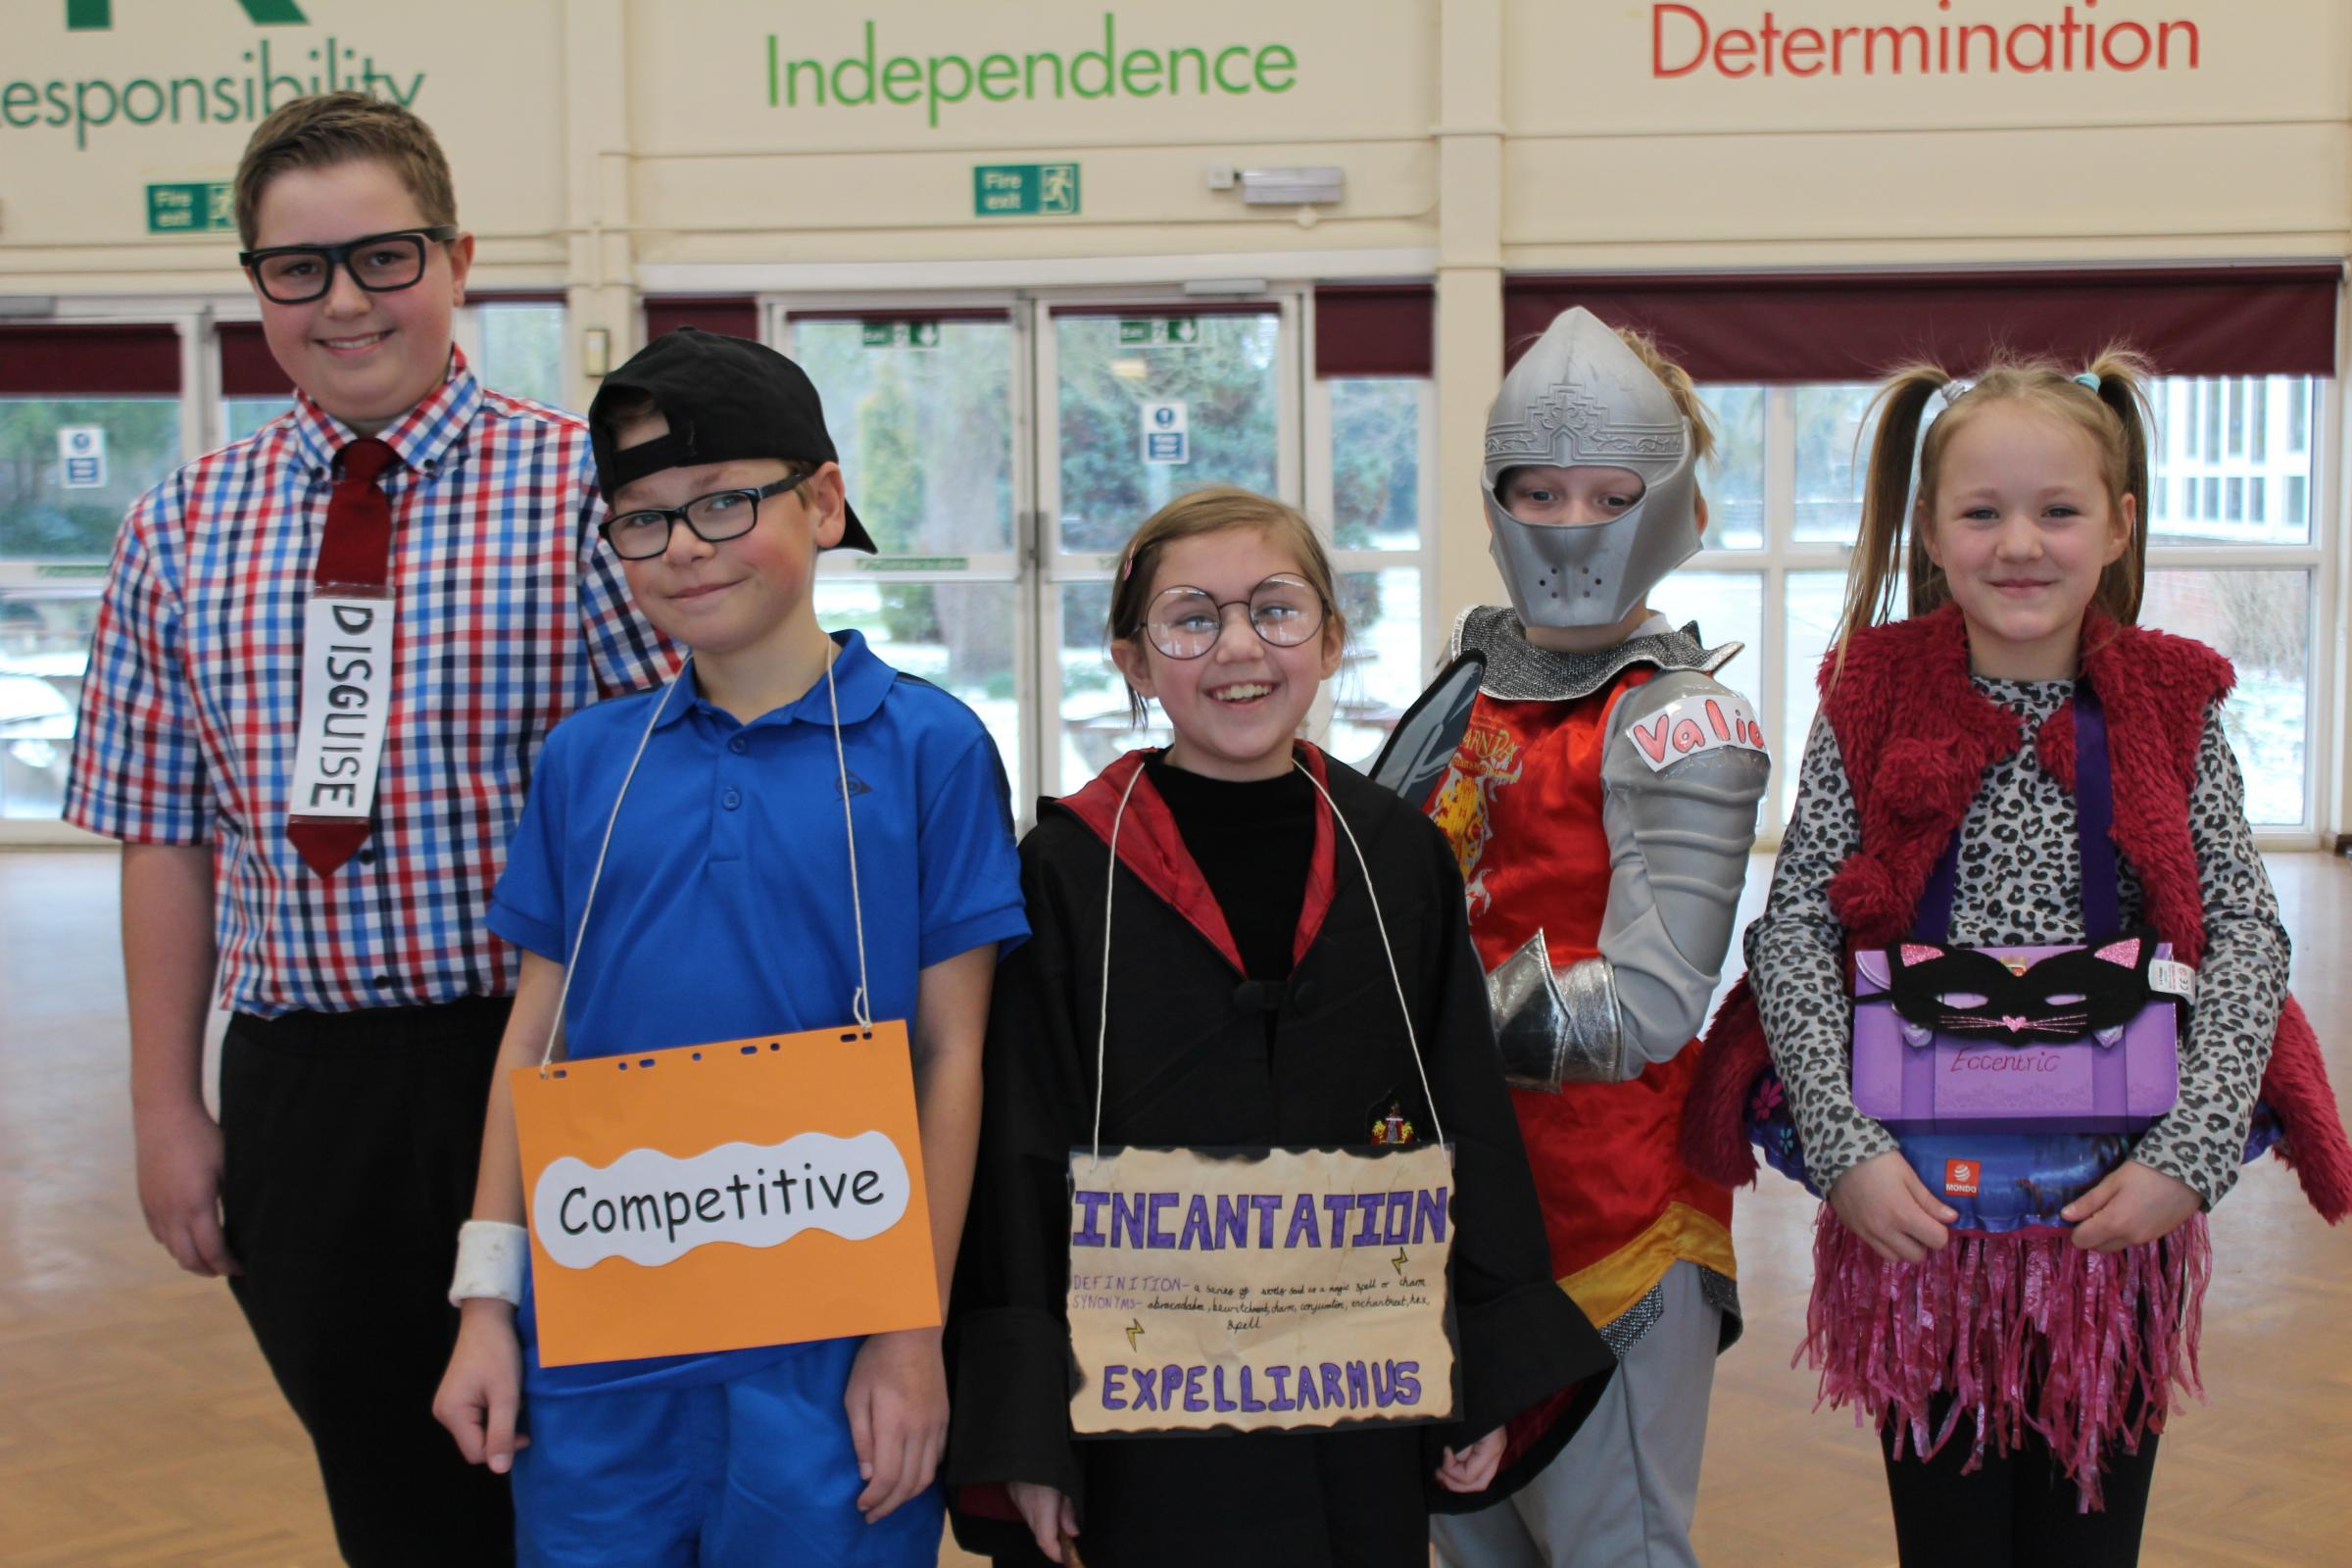 'Cool' vocabulary day at Witton Middle School